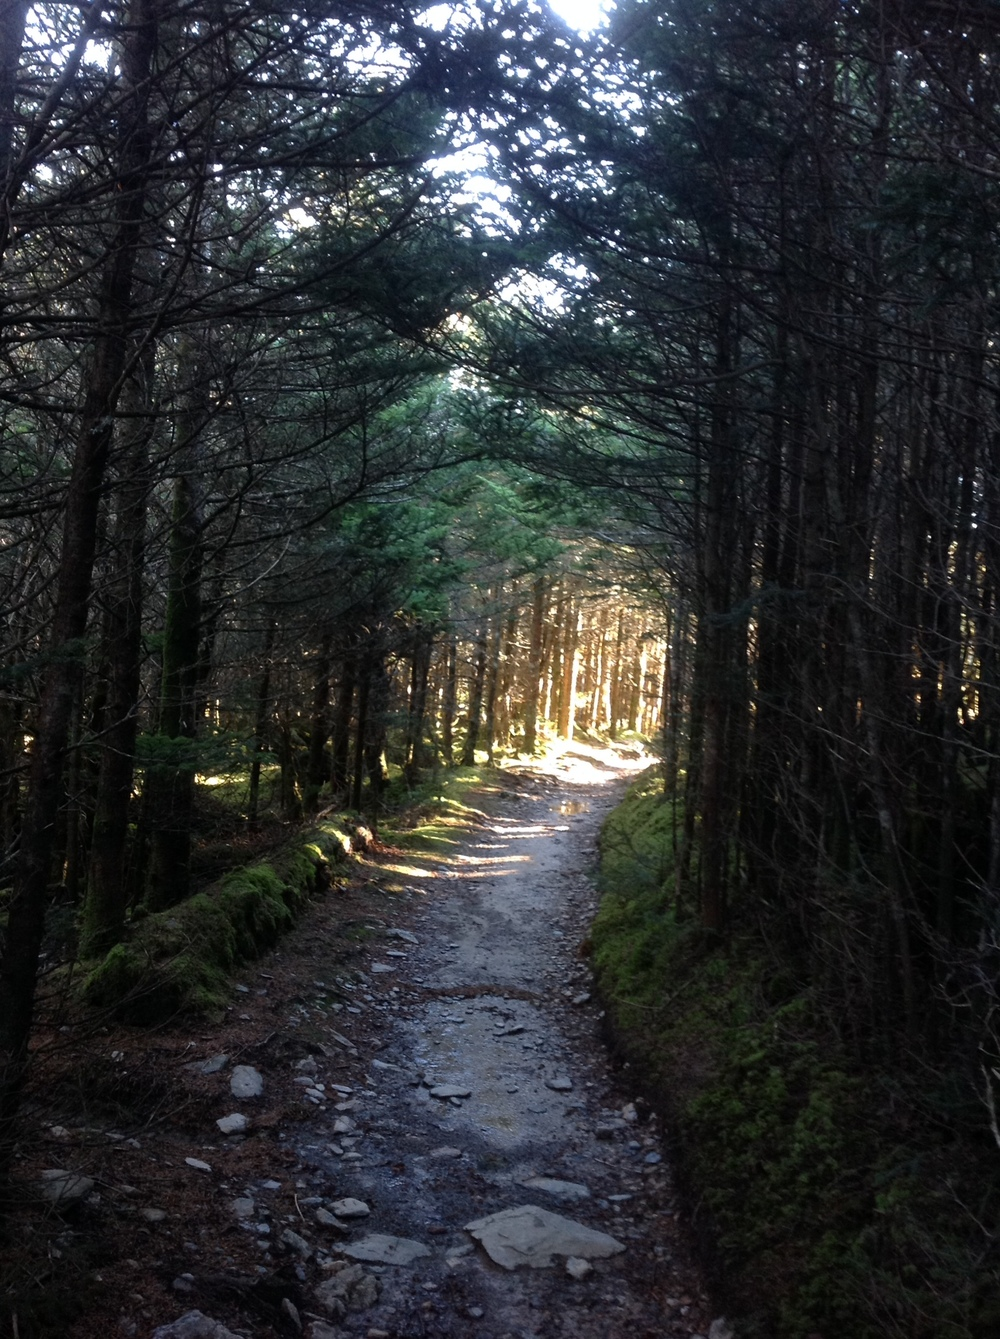 1/2 mile before the summit of Mt. Le Conte in Smoky Mountains National Park